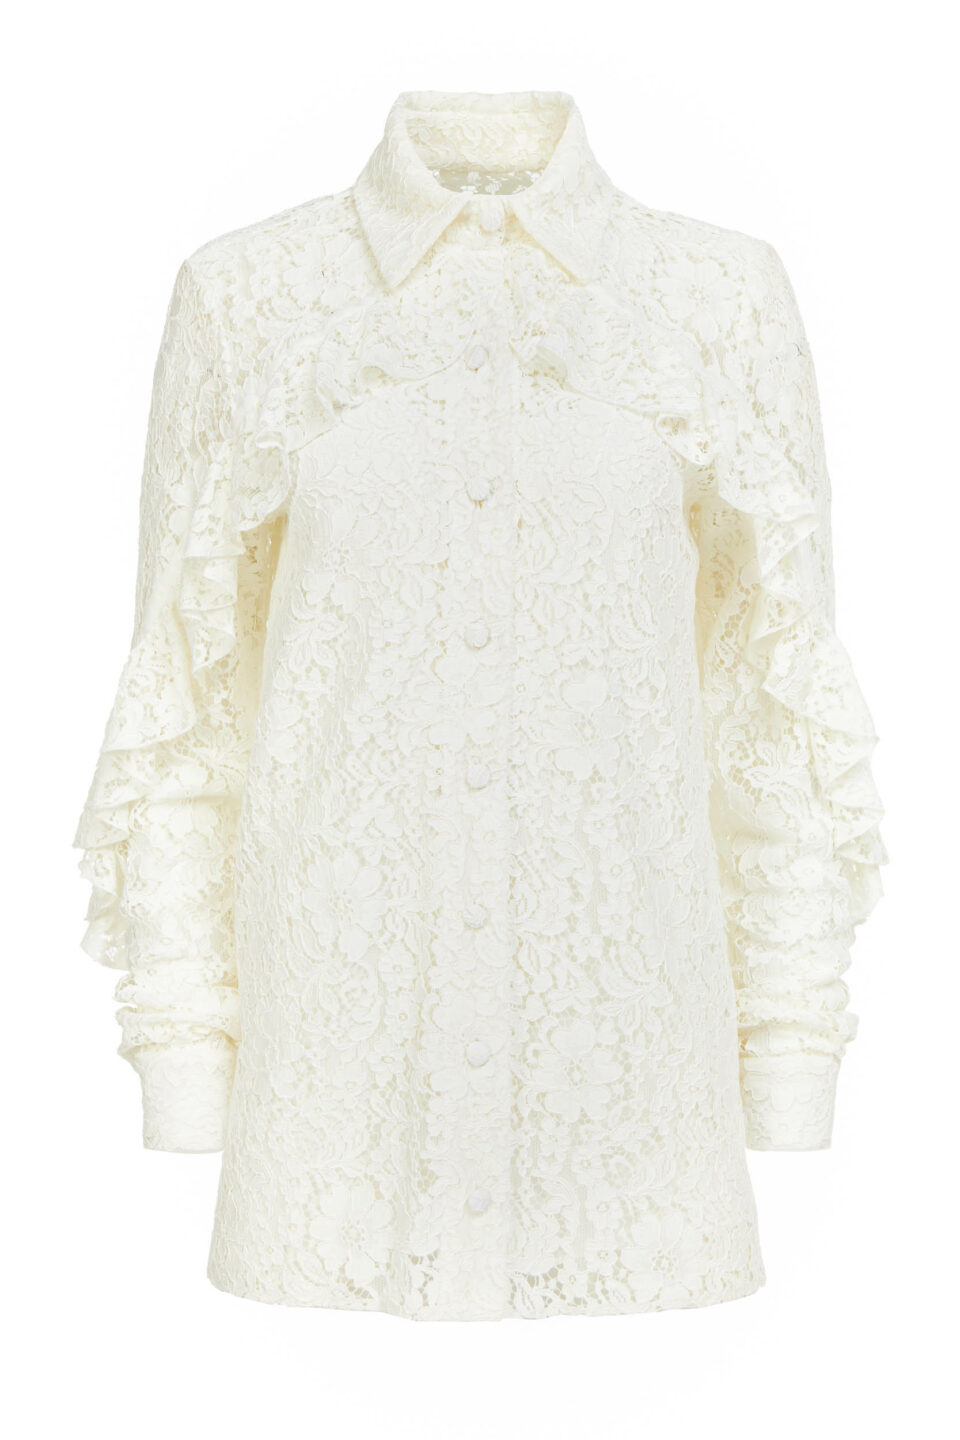 Kanna PR2116 White Corded Lace Collared ButtondownBlouse with Ruffle Detail